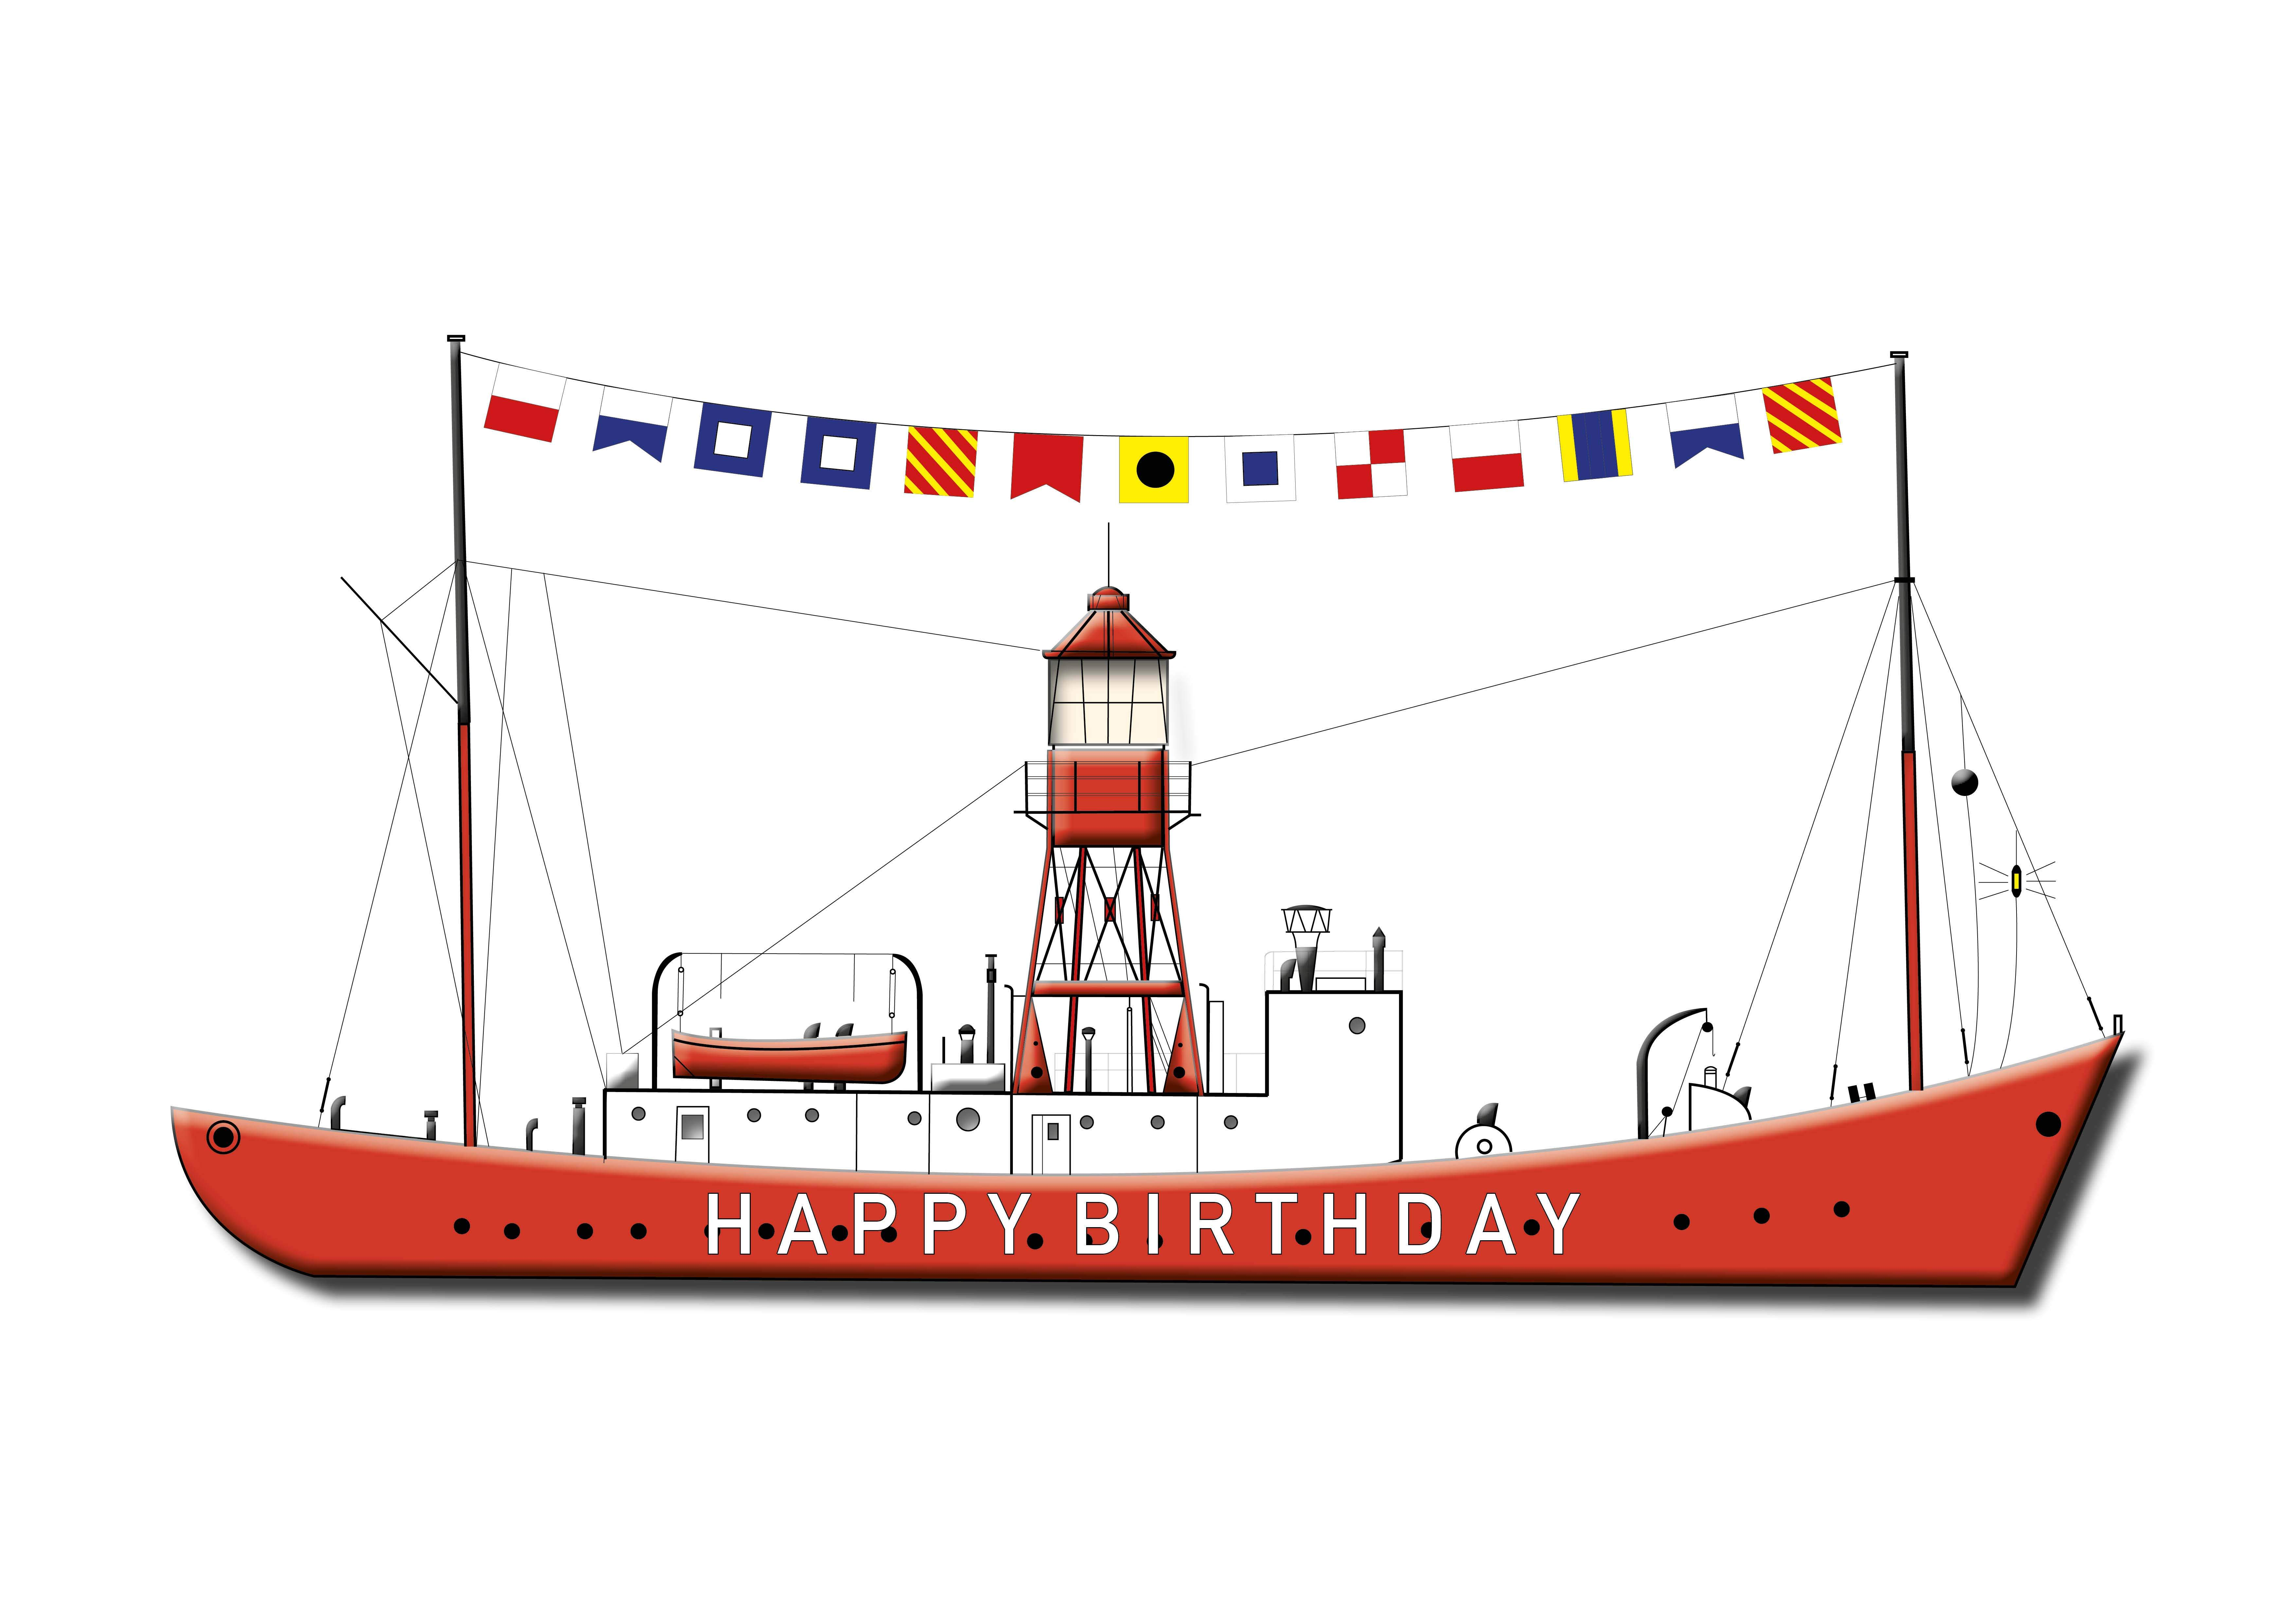 Happy Birthday - Lightship Greetings Cards - Pack of 4